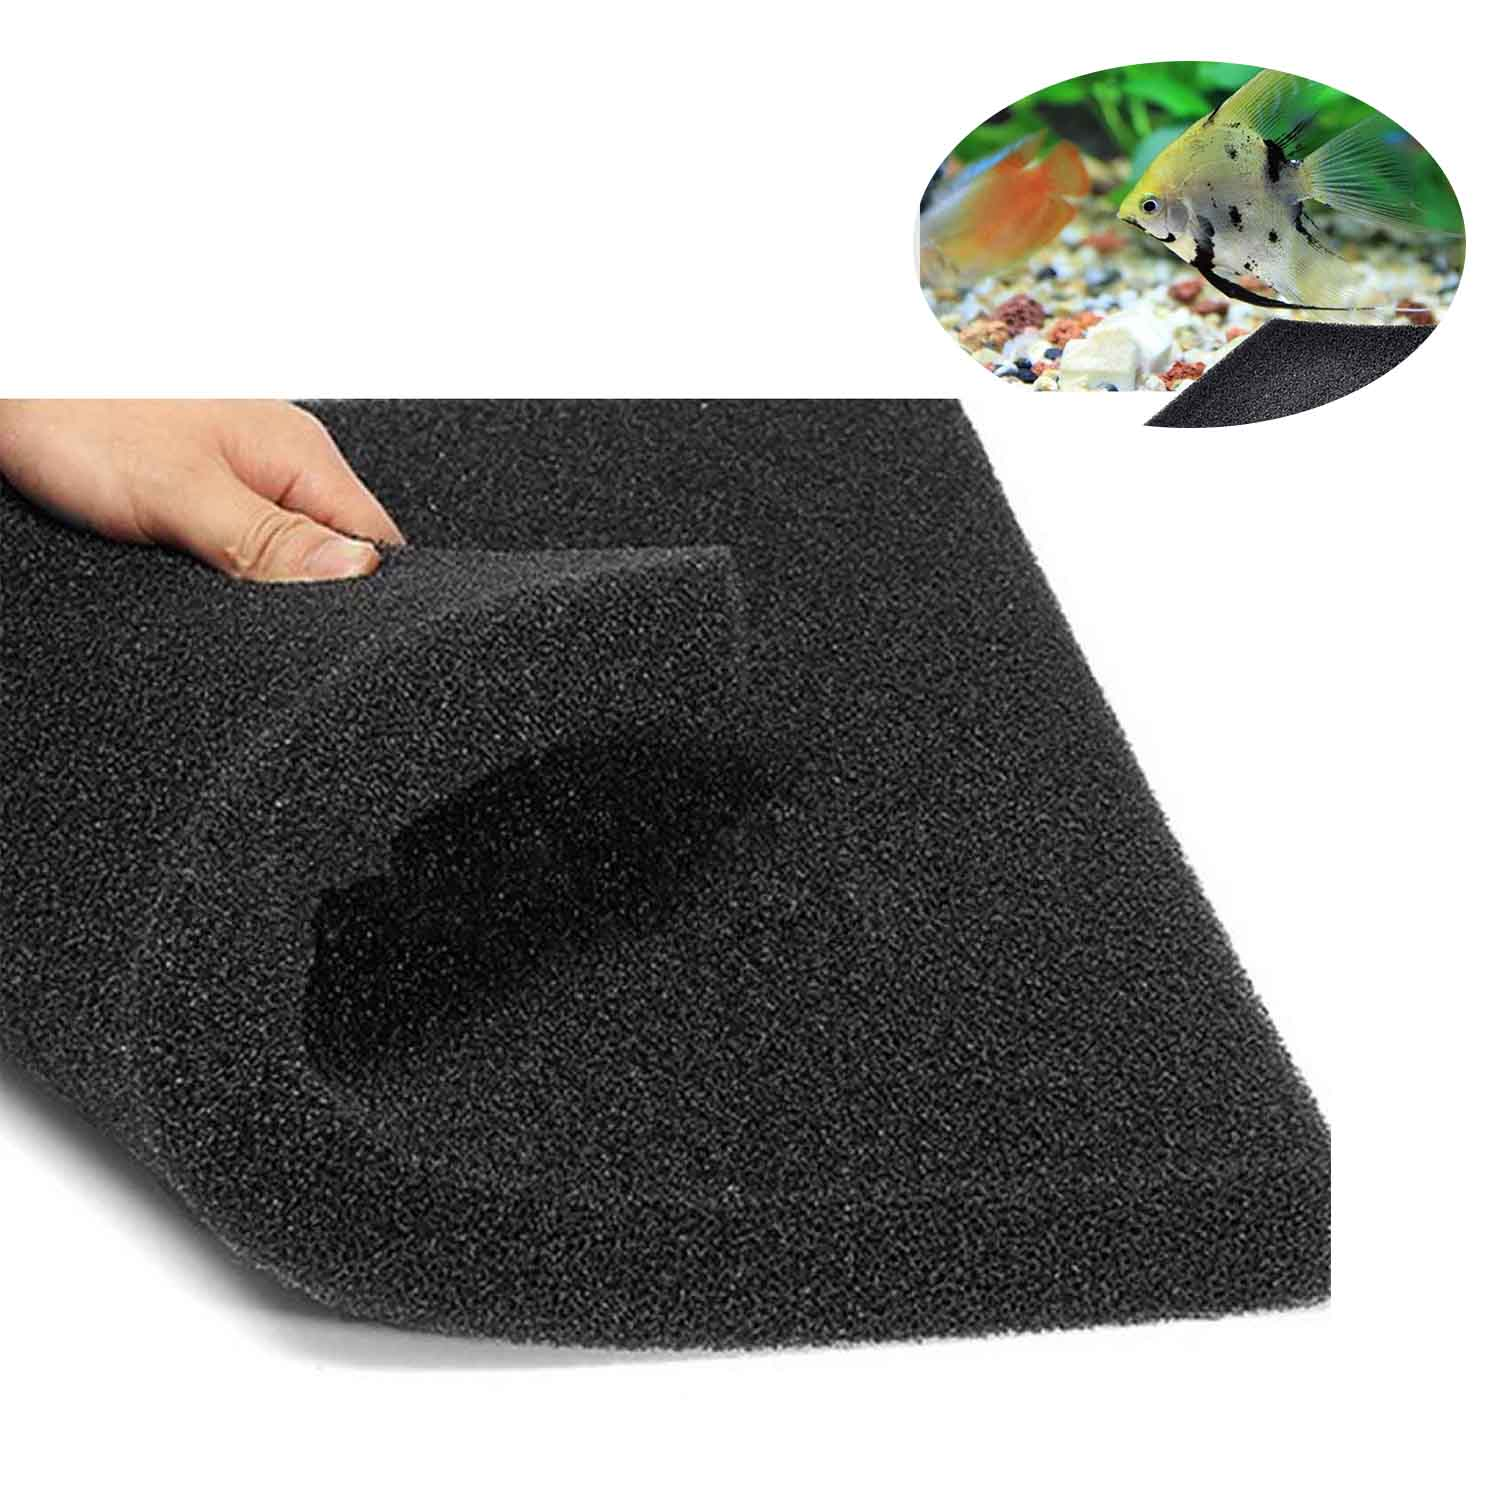 50 x 50 x 2cm Aquarium Activated Carbon Media Filtration Sponge Filter Cut-to-Fit Foam Pad for Fish Pond Reef Canister Tank image